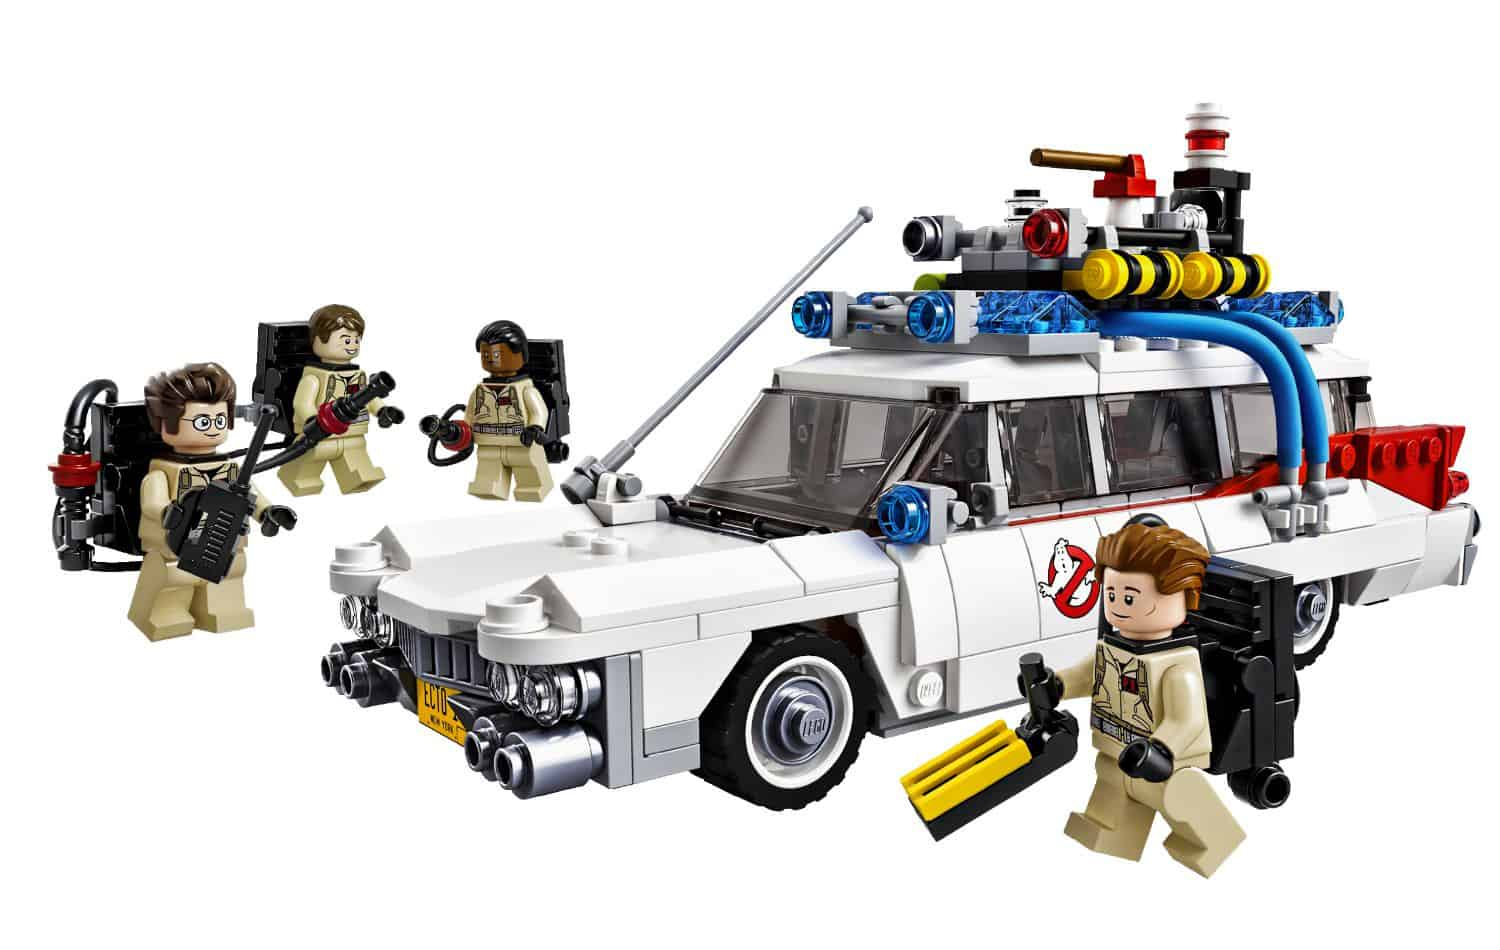 Lego Ghostbusters Ecto-1 Collector and Fan Gift Idea